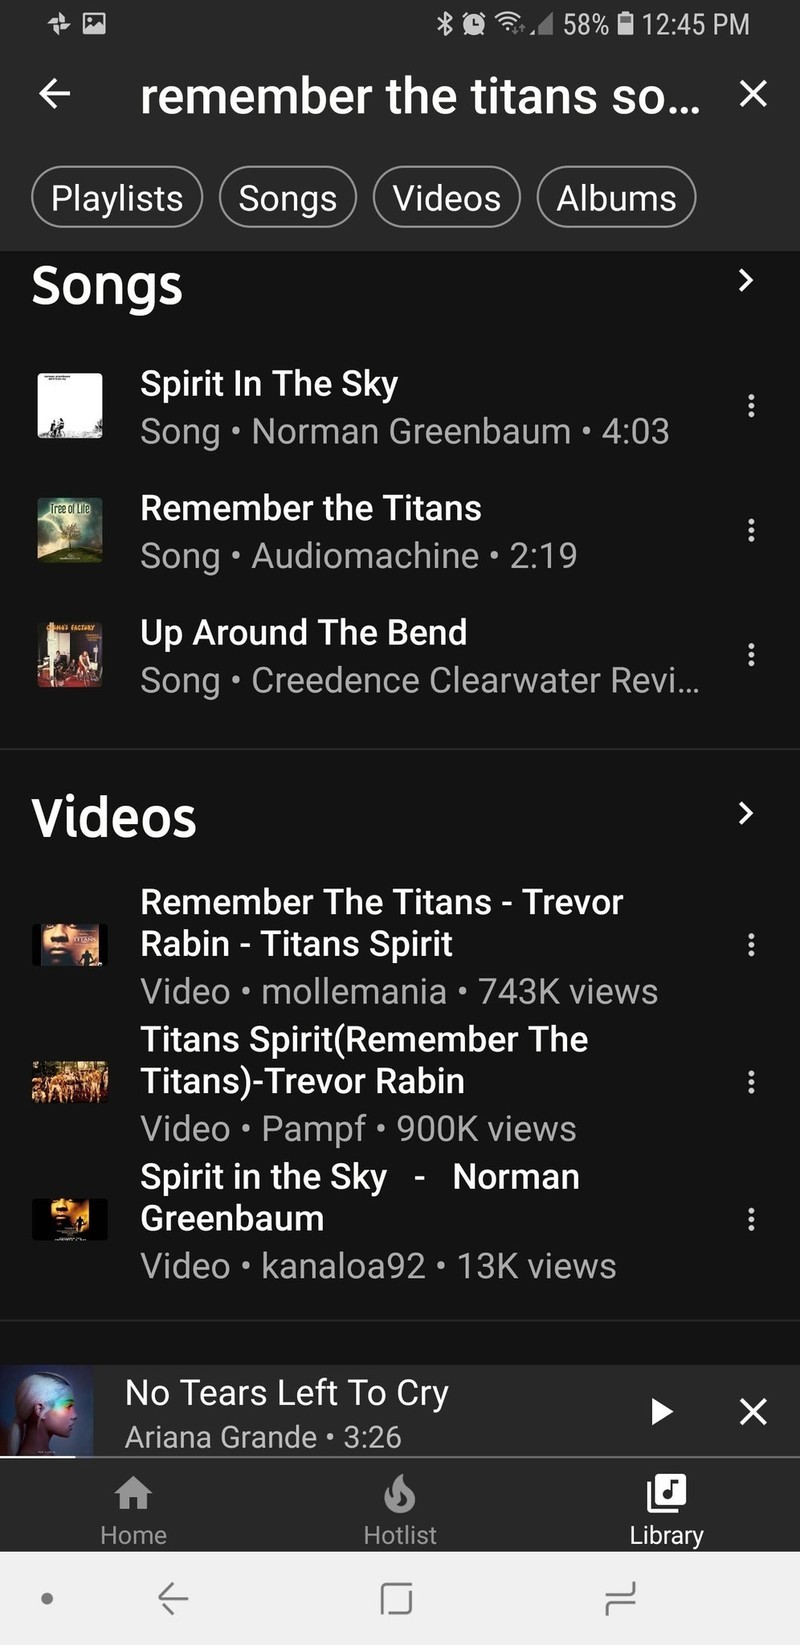 ytmusic-search-titans.jpg?itok=1ofJYEwC